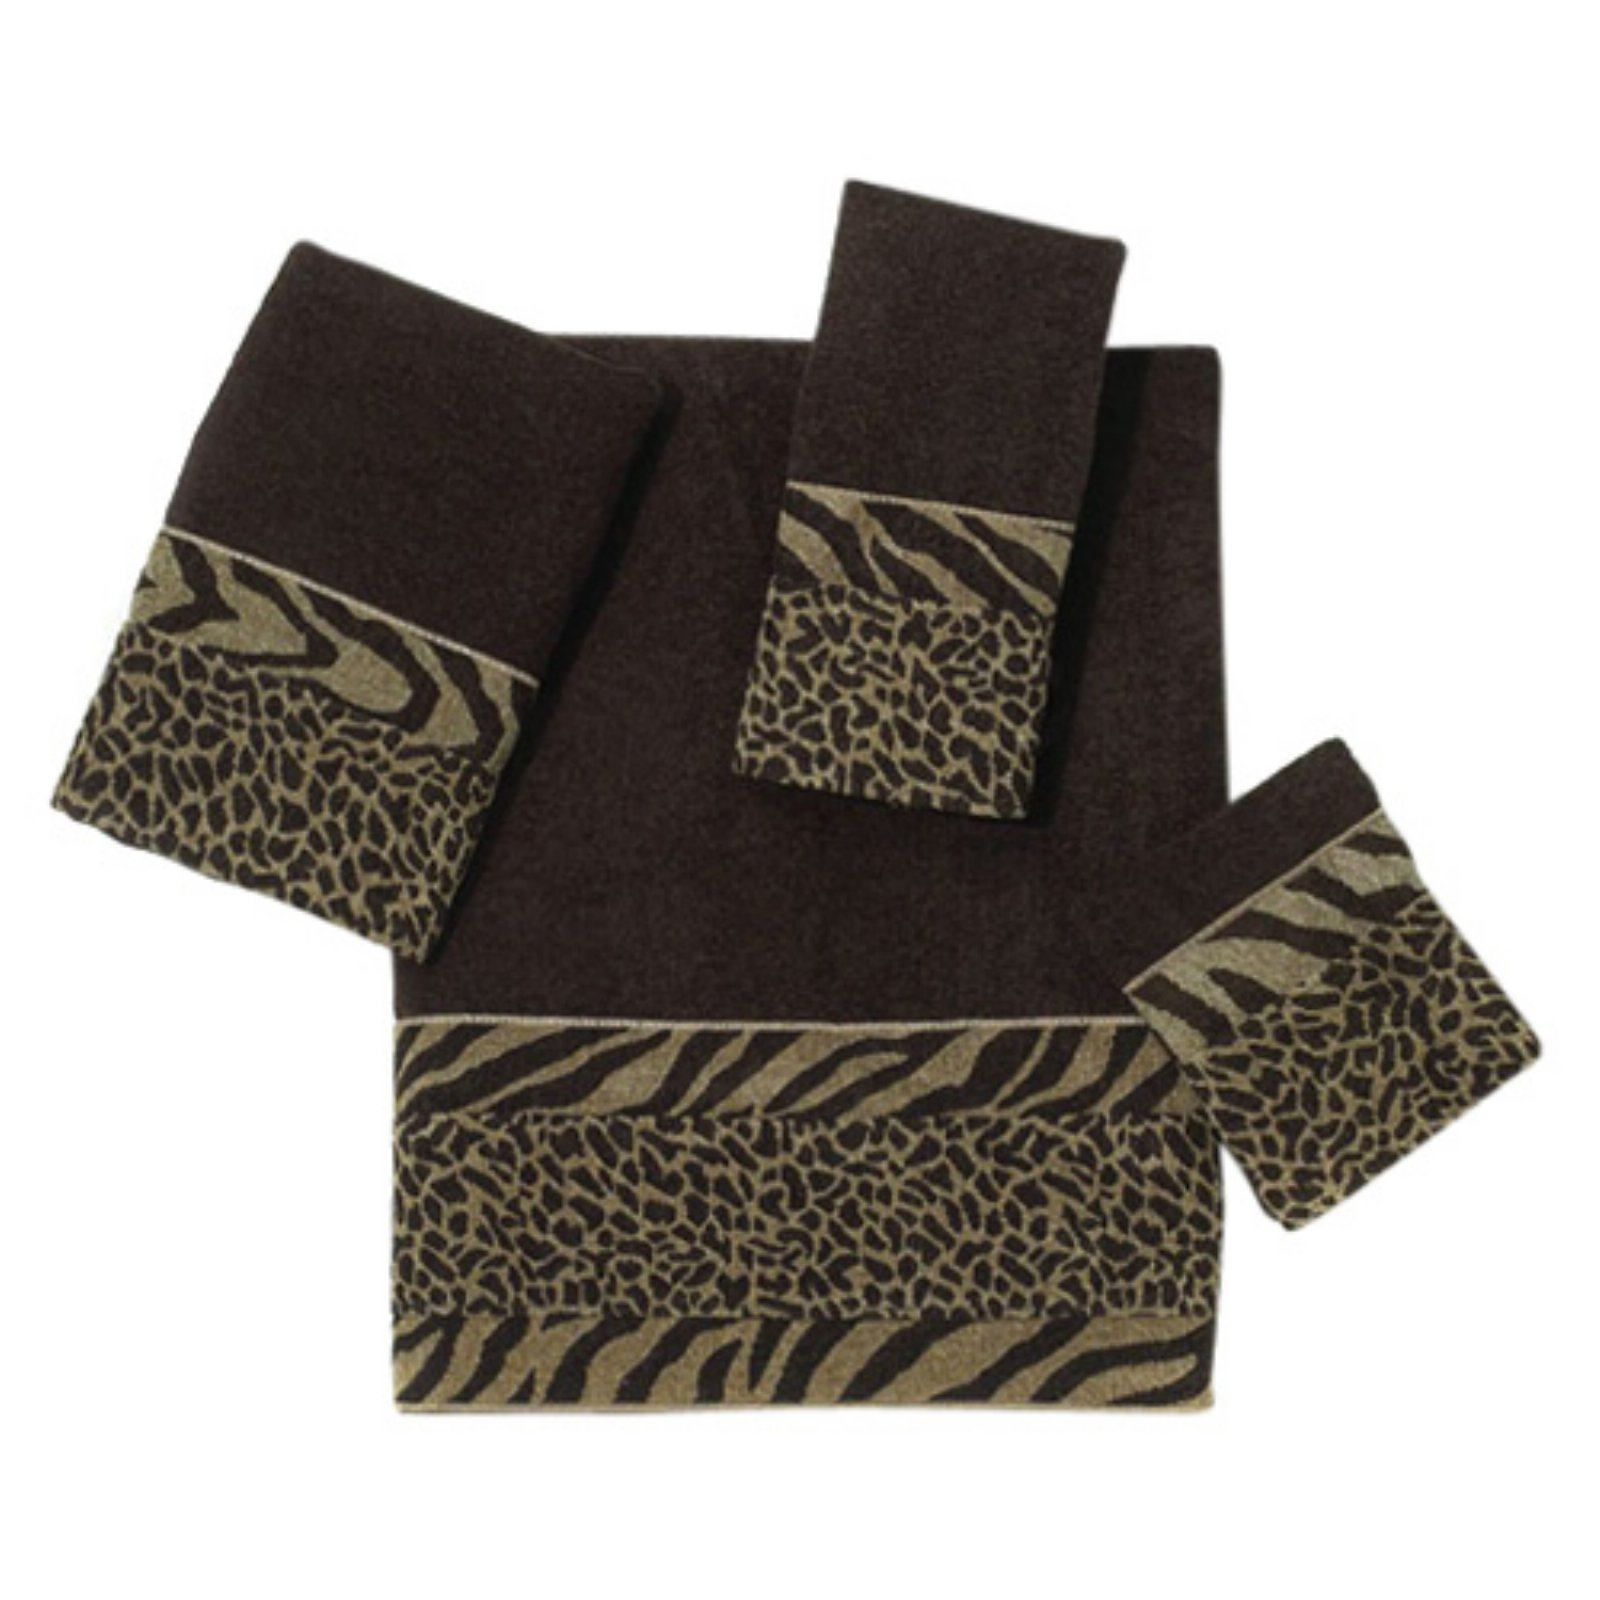 Avanti Cheshire 100% Cotton Java 4 Piece Towel Set